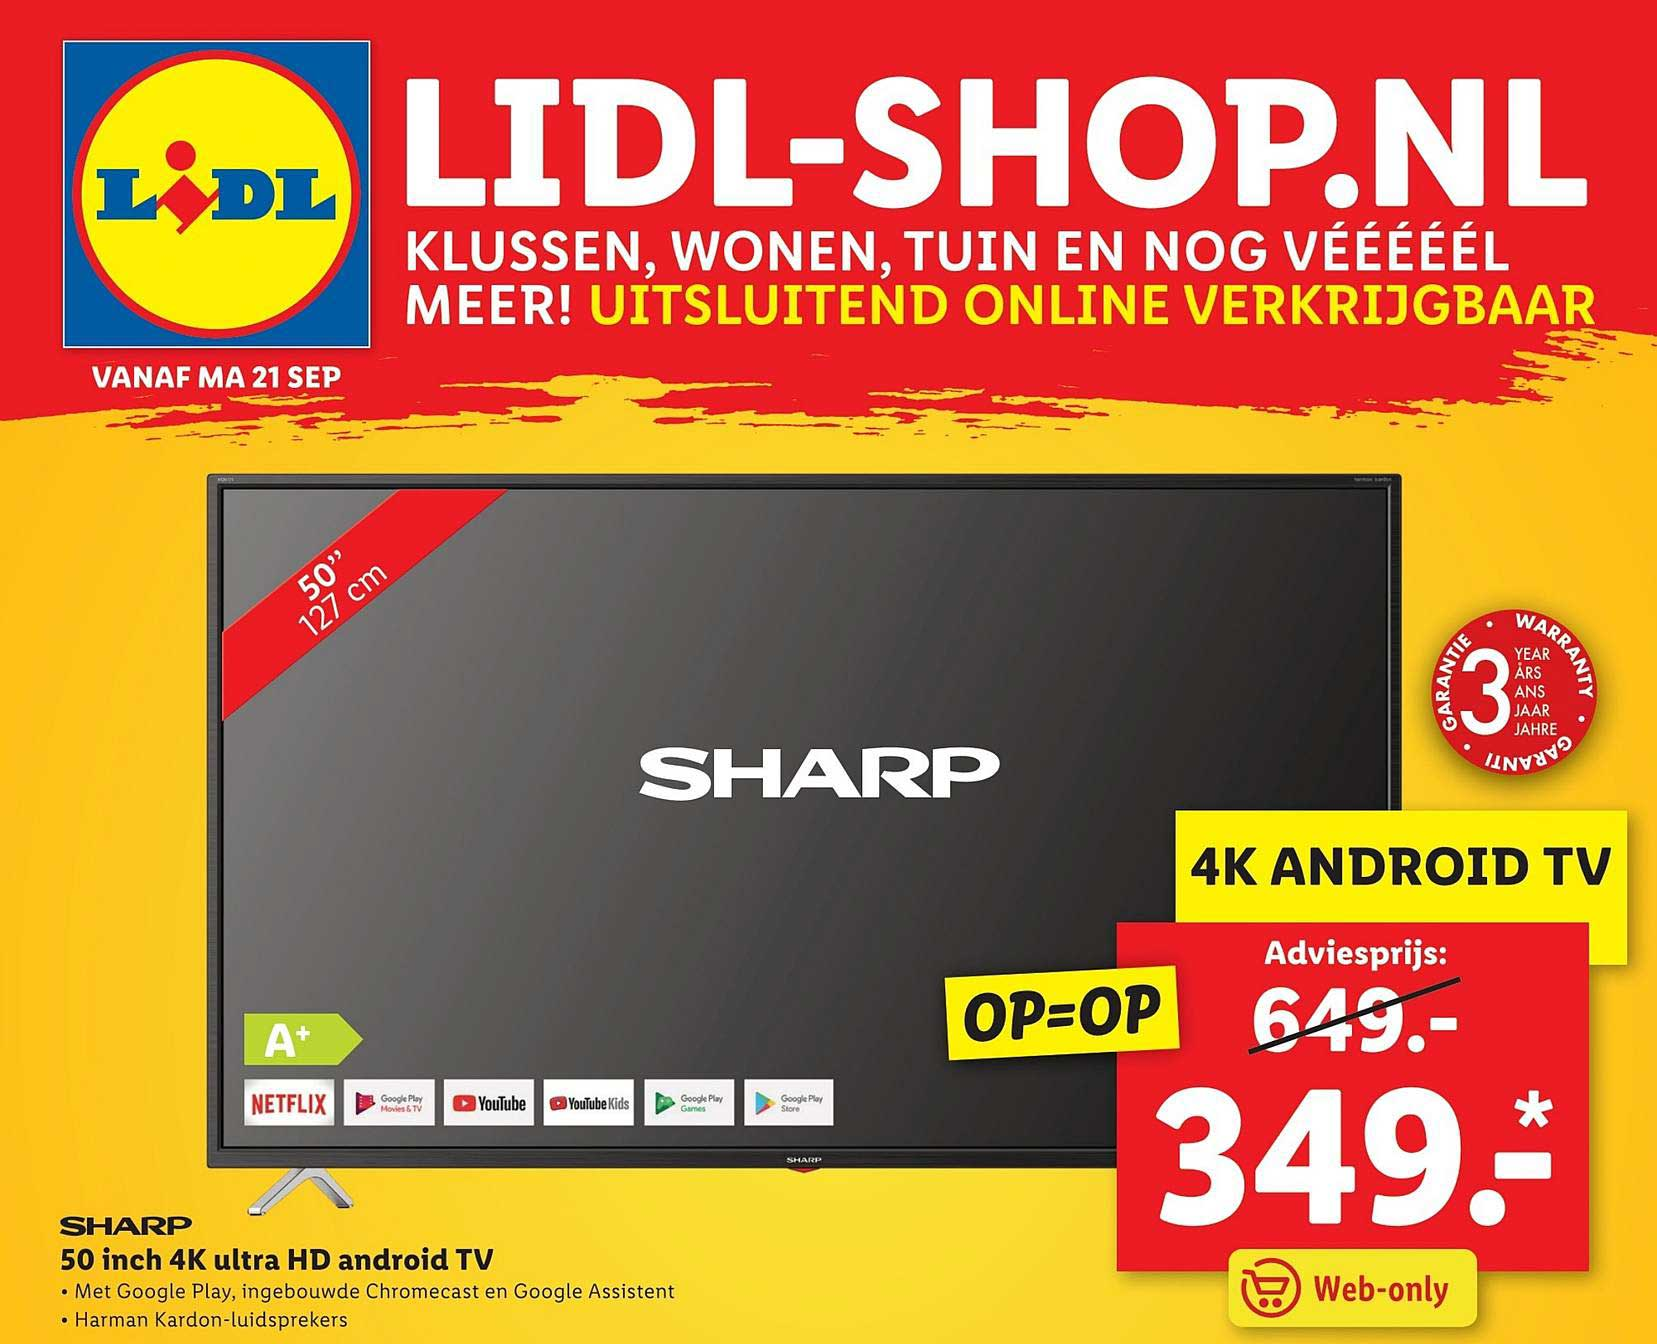 Lidl Shop Sharp 50 Inch 4K Ultra HD Android TV